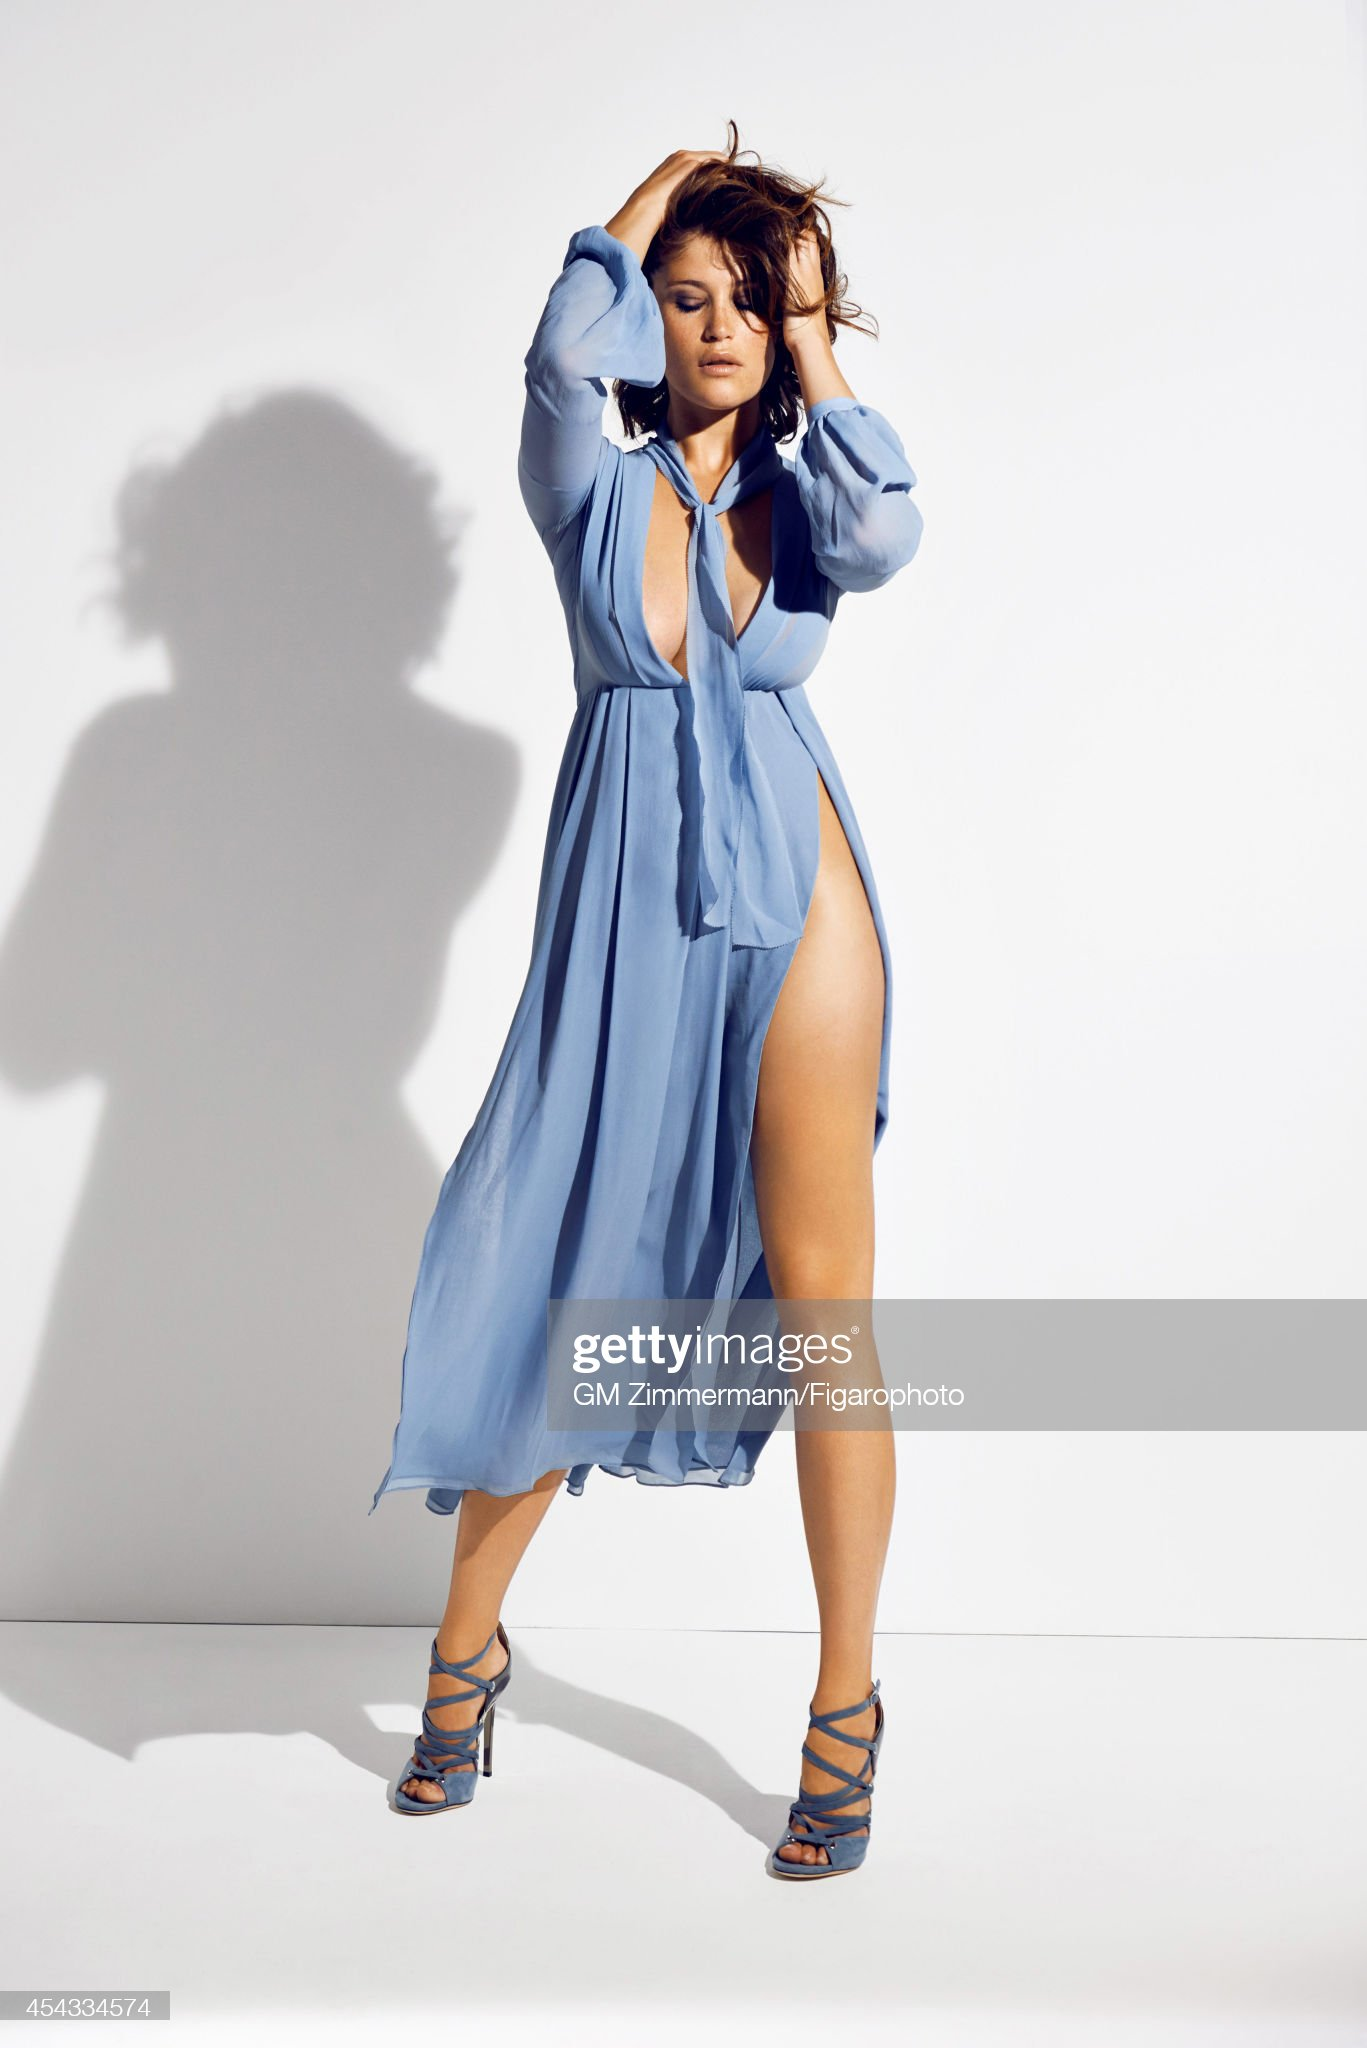 actress-gemma-arterton-is-photographed-for-madame-figaro-on-june-19-picture-id454334574